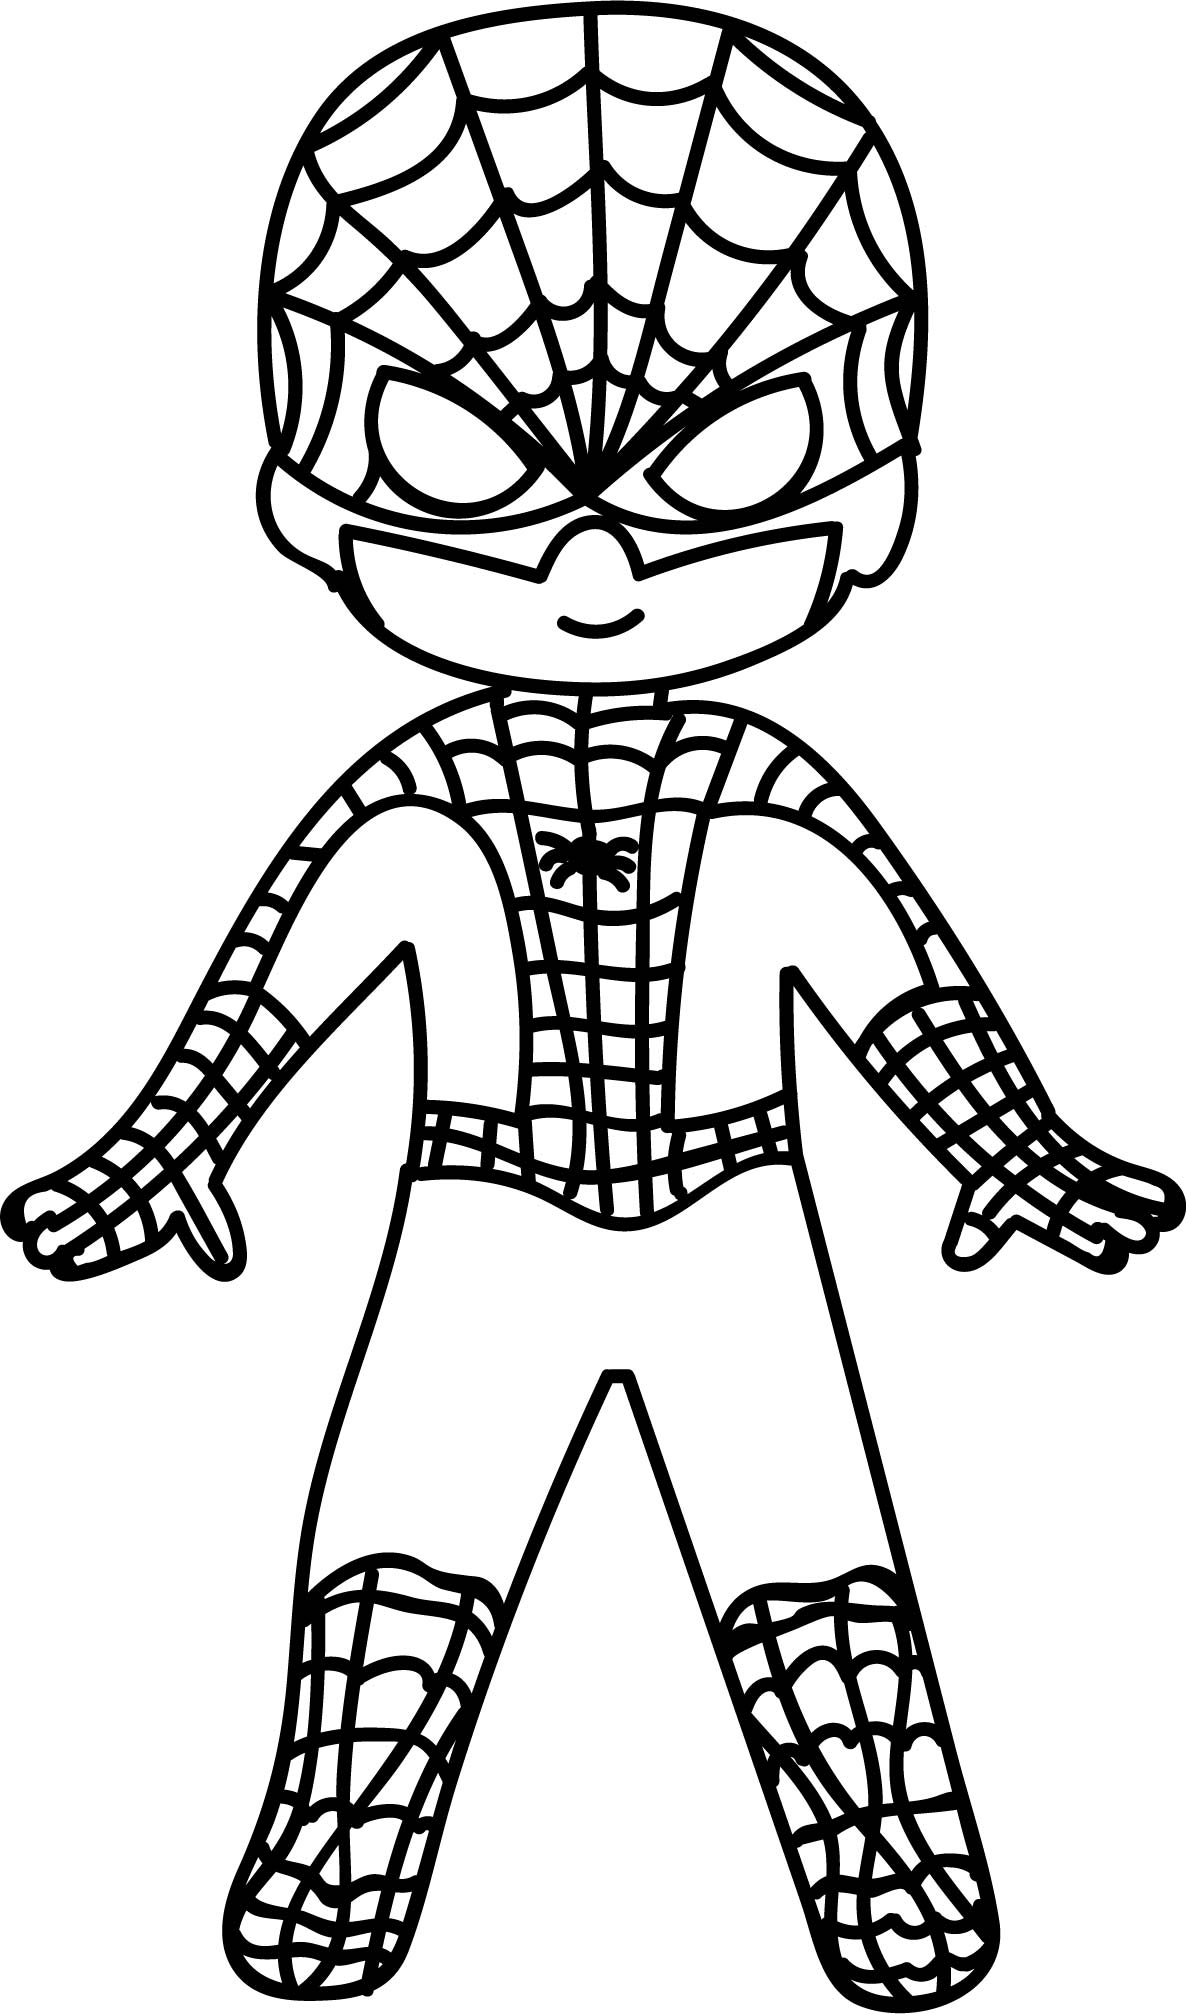 coloring spiderman for kids spiderman free to color for children spiderman kids coloring spiderman for kids